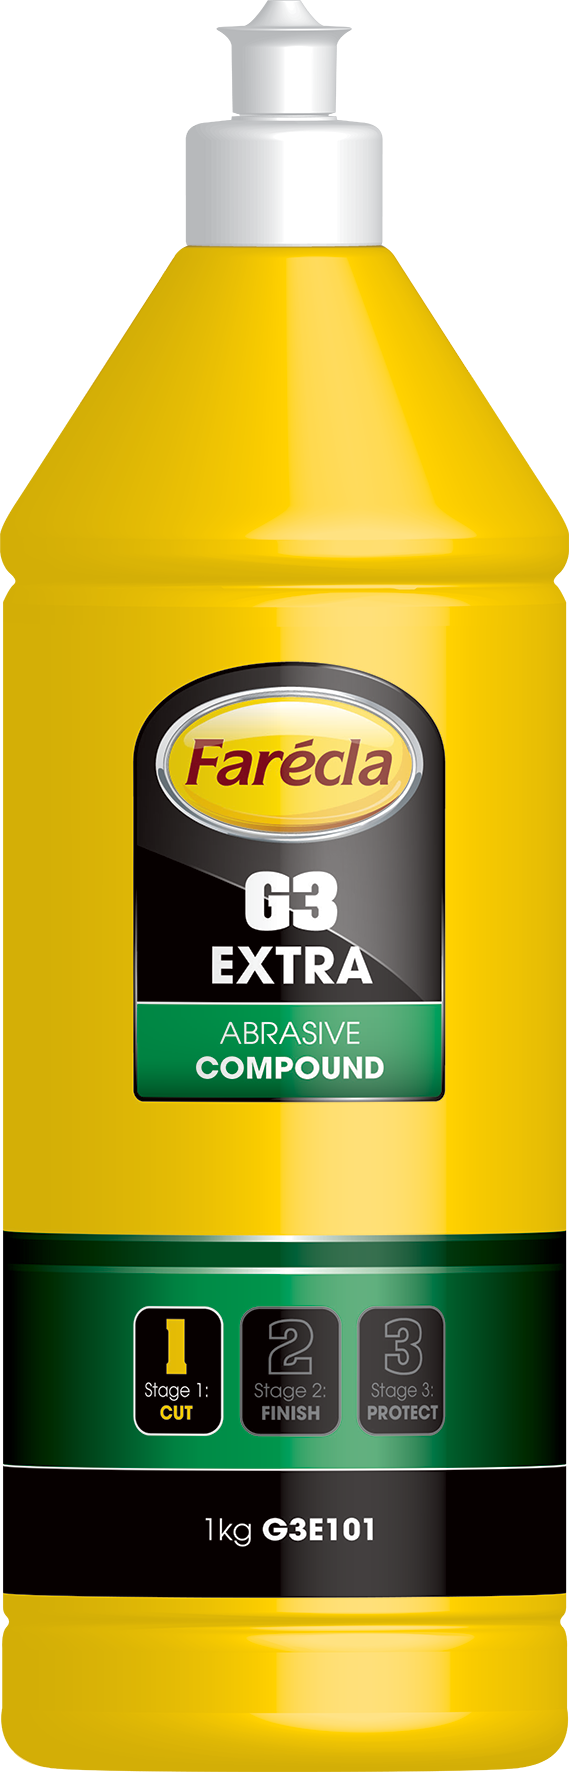 Farecla G3 Extra Abrasive Compound 1L